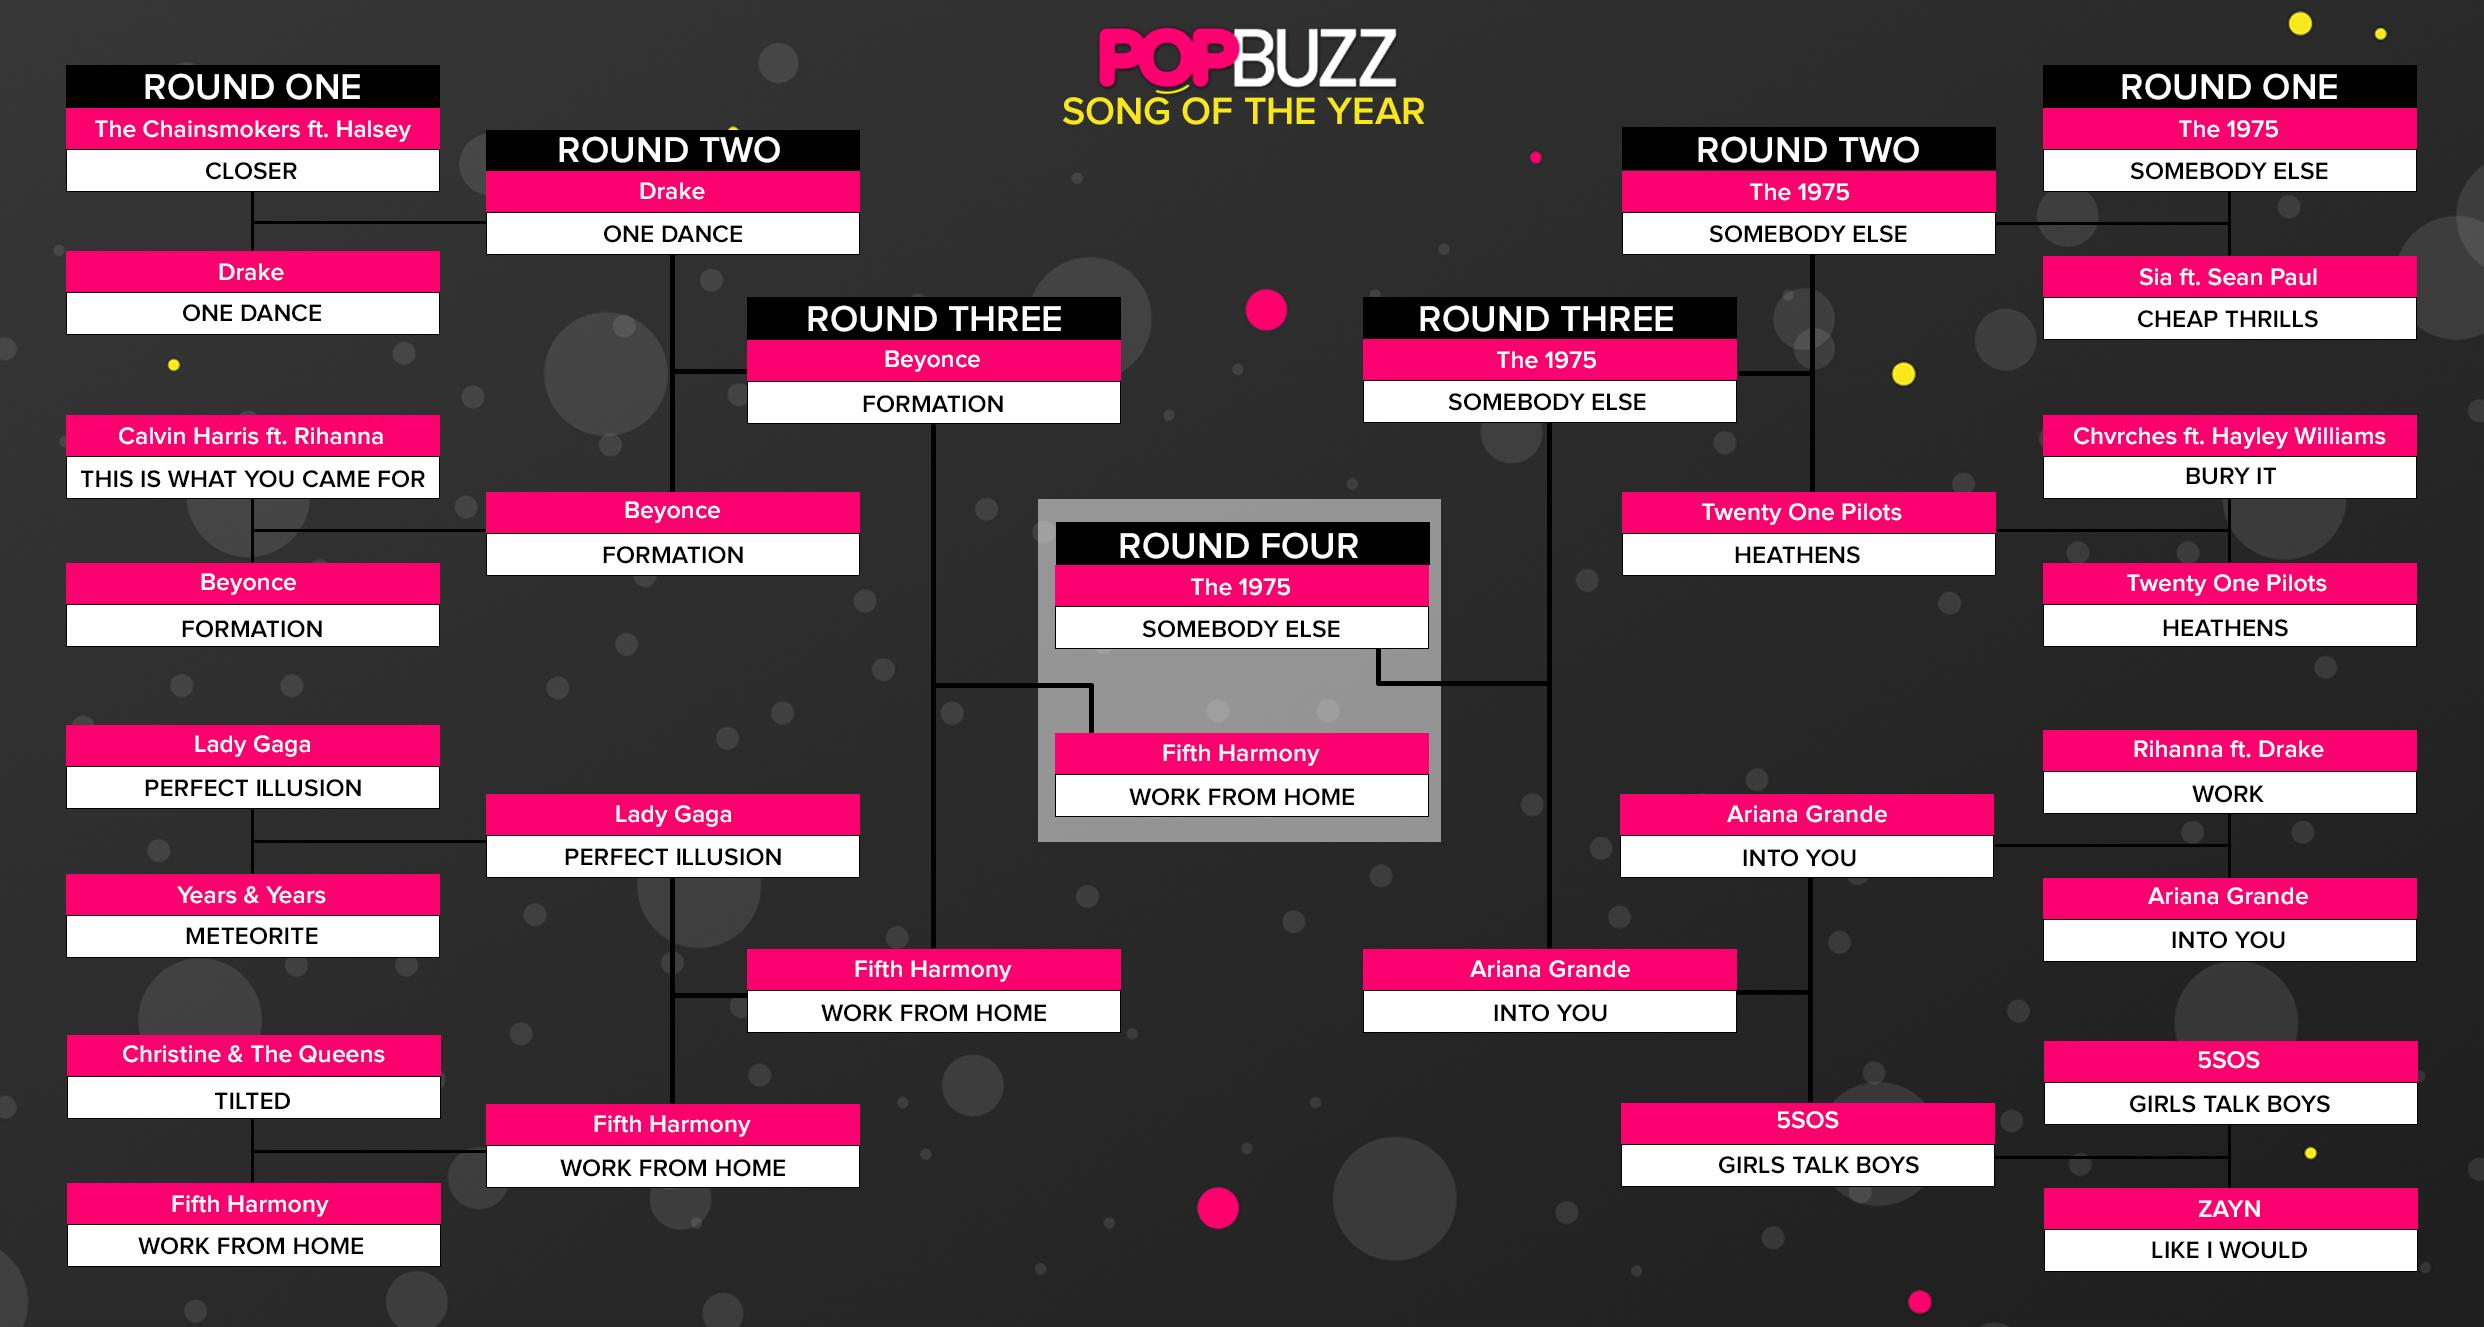 PopBuzz Song Of The Year Round 4